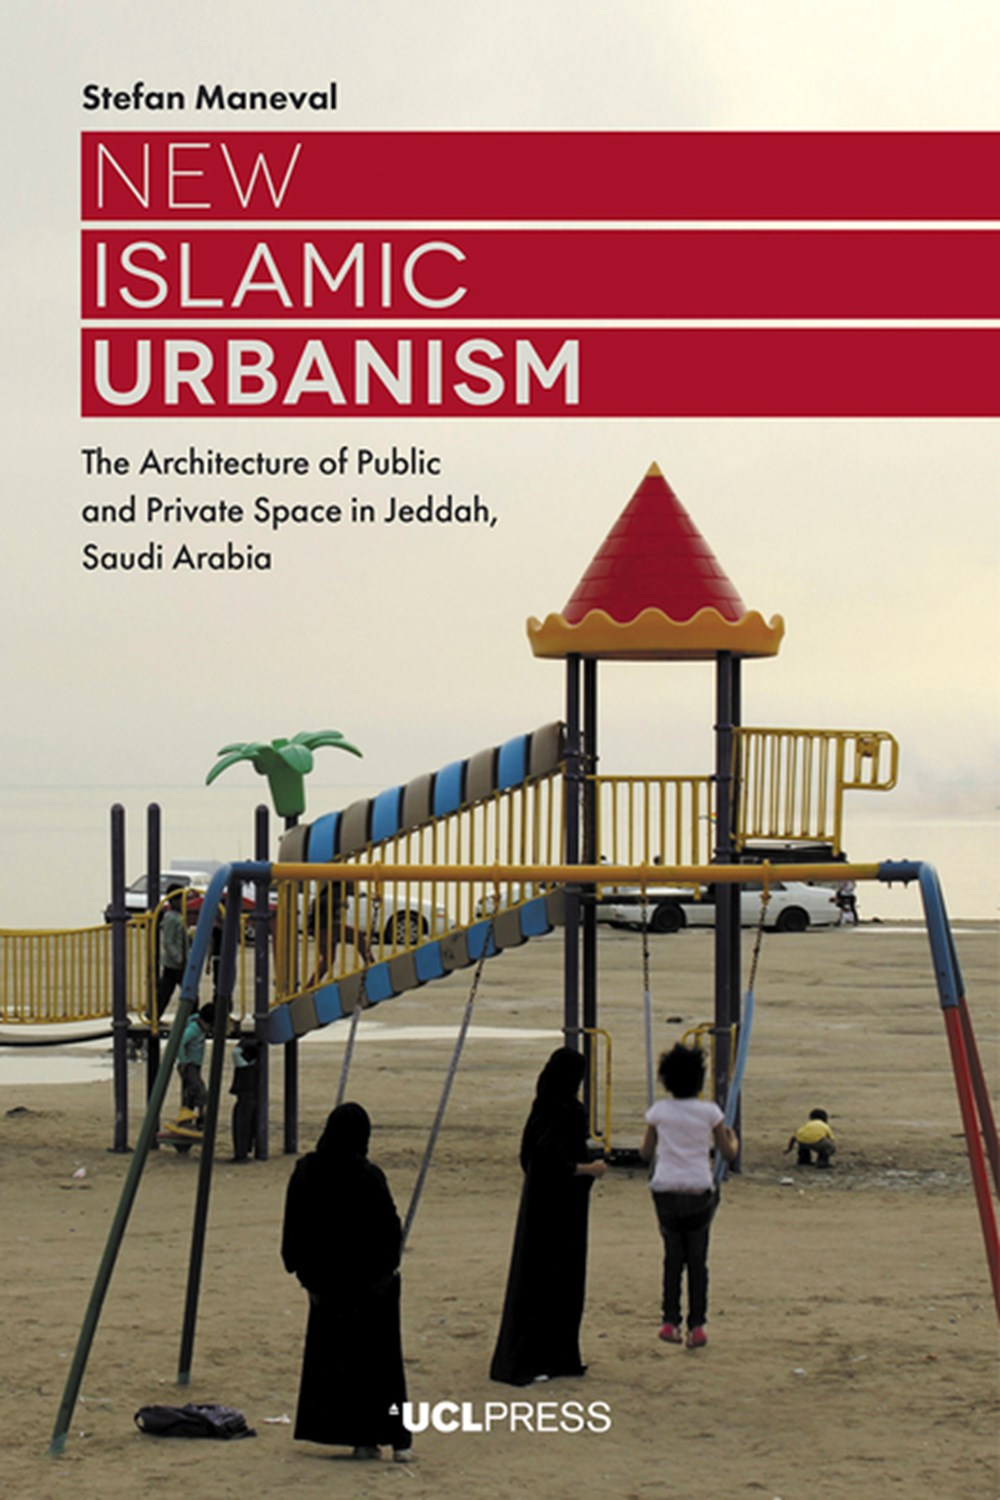 New Islamic Urbanism The Architecture of Public and Private Space in Jeddah, Saudi Arabia